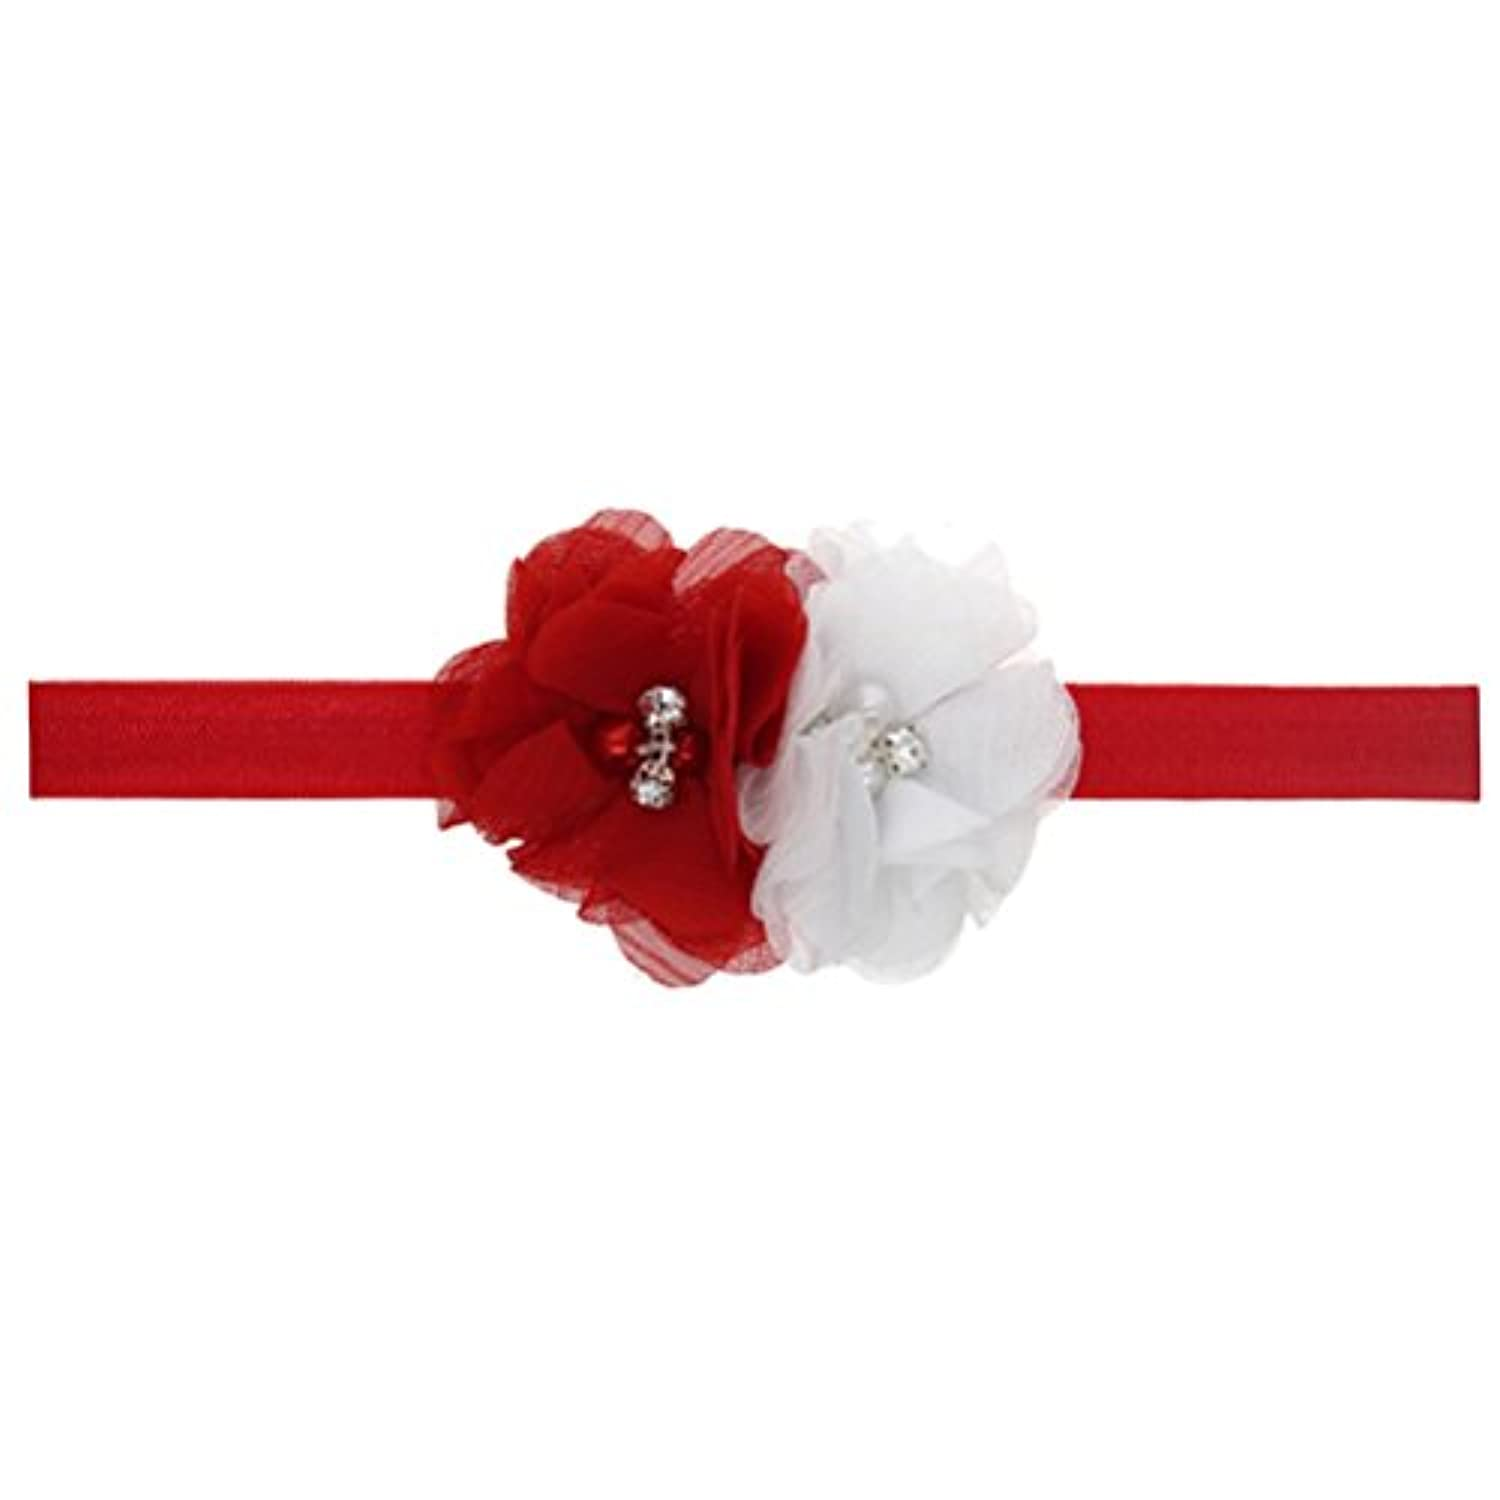 Zhhlaixing ベビー小物 Kids Baby Girls Soft Elastic Flowers Headband Hairband Hair Accessories for Christmas 5123